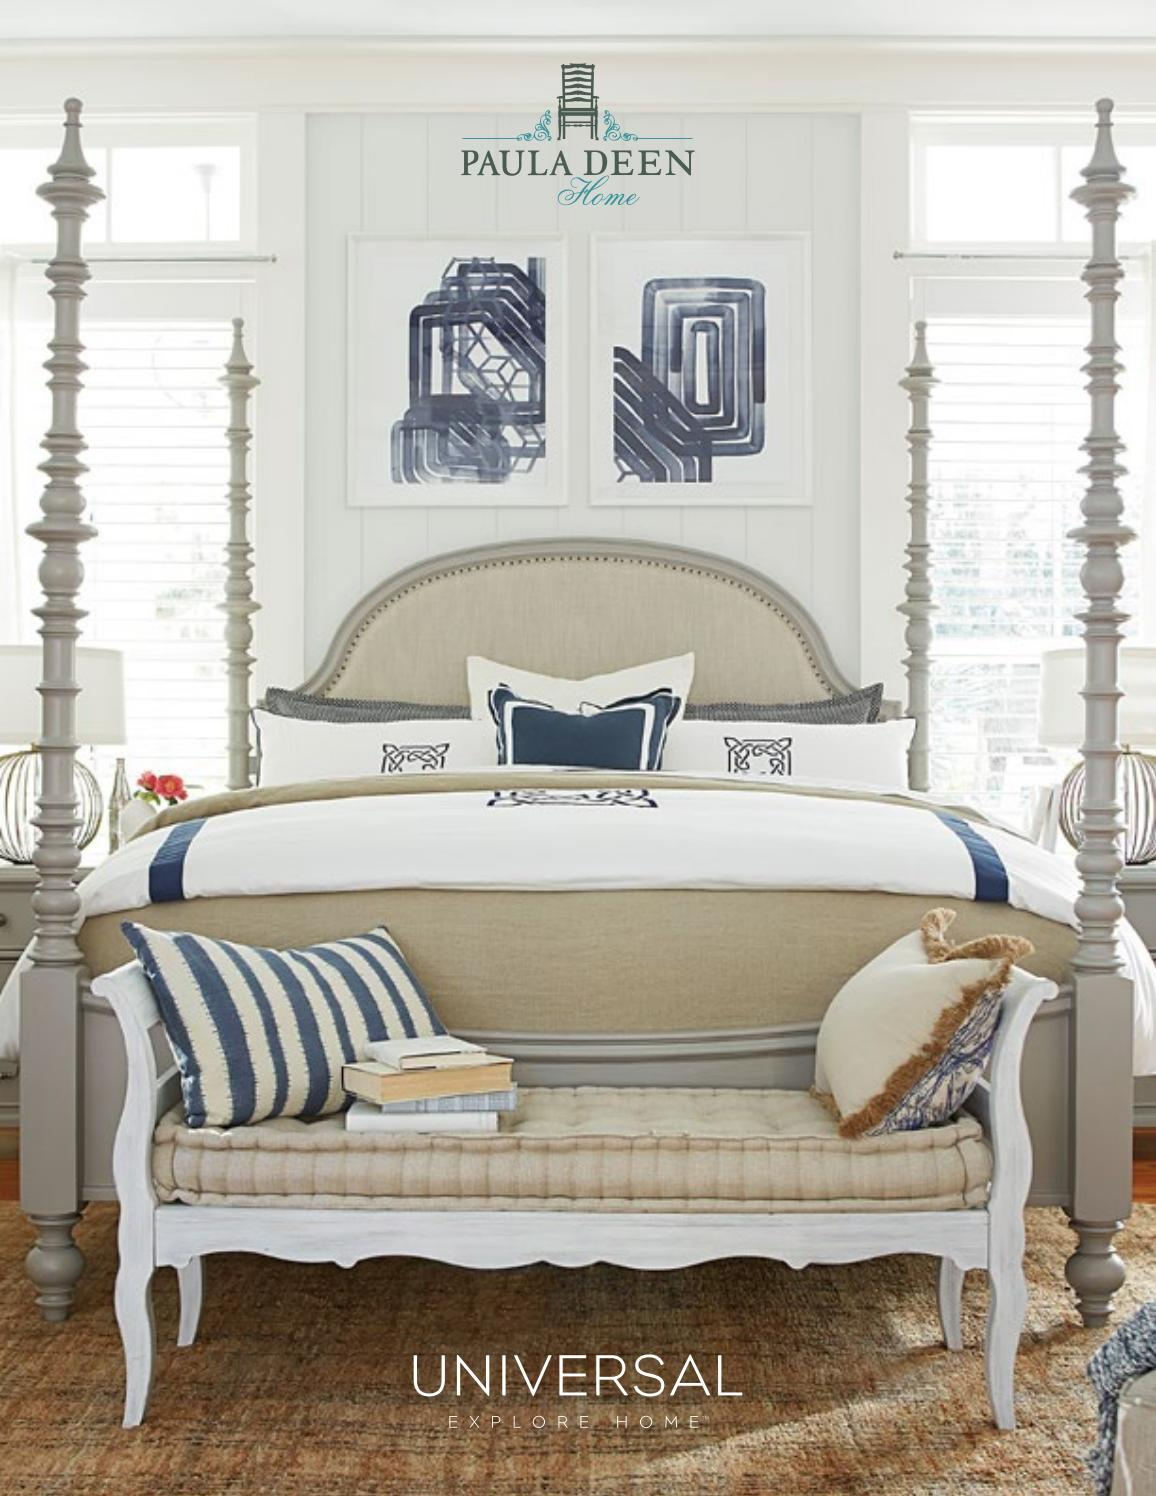 Paula Deen Home By Universal Furniture Issuu